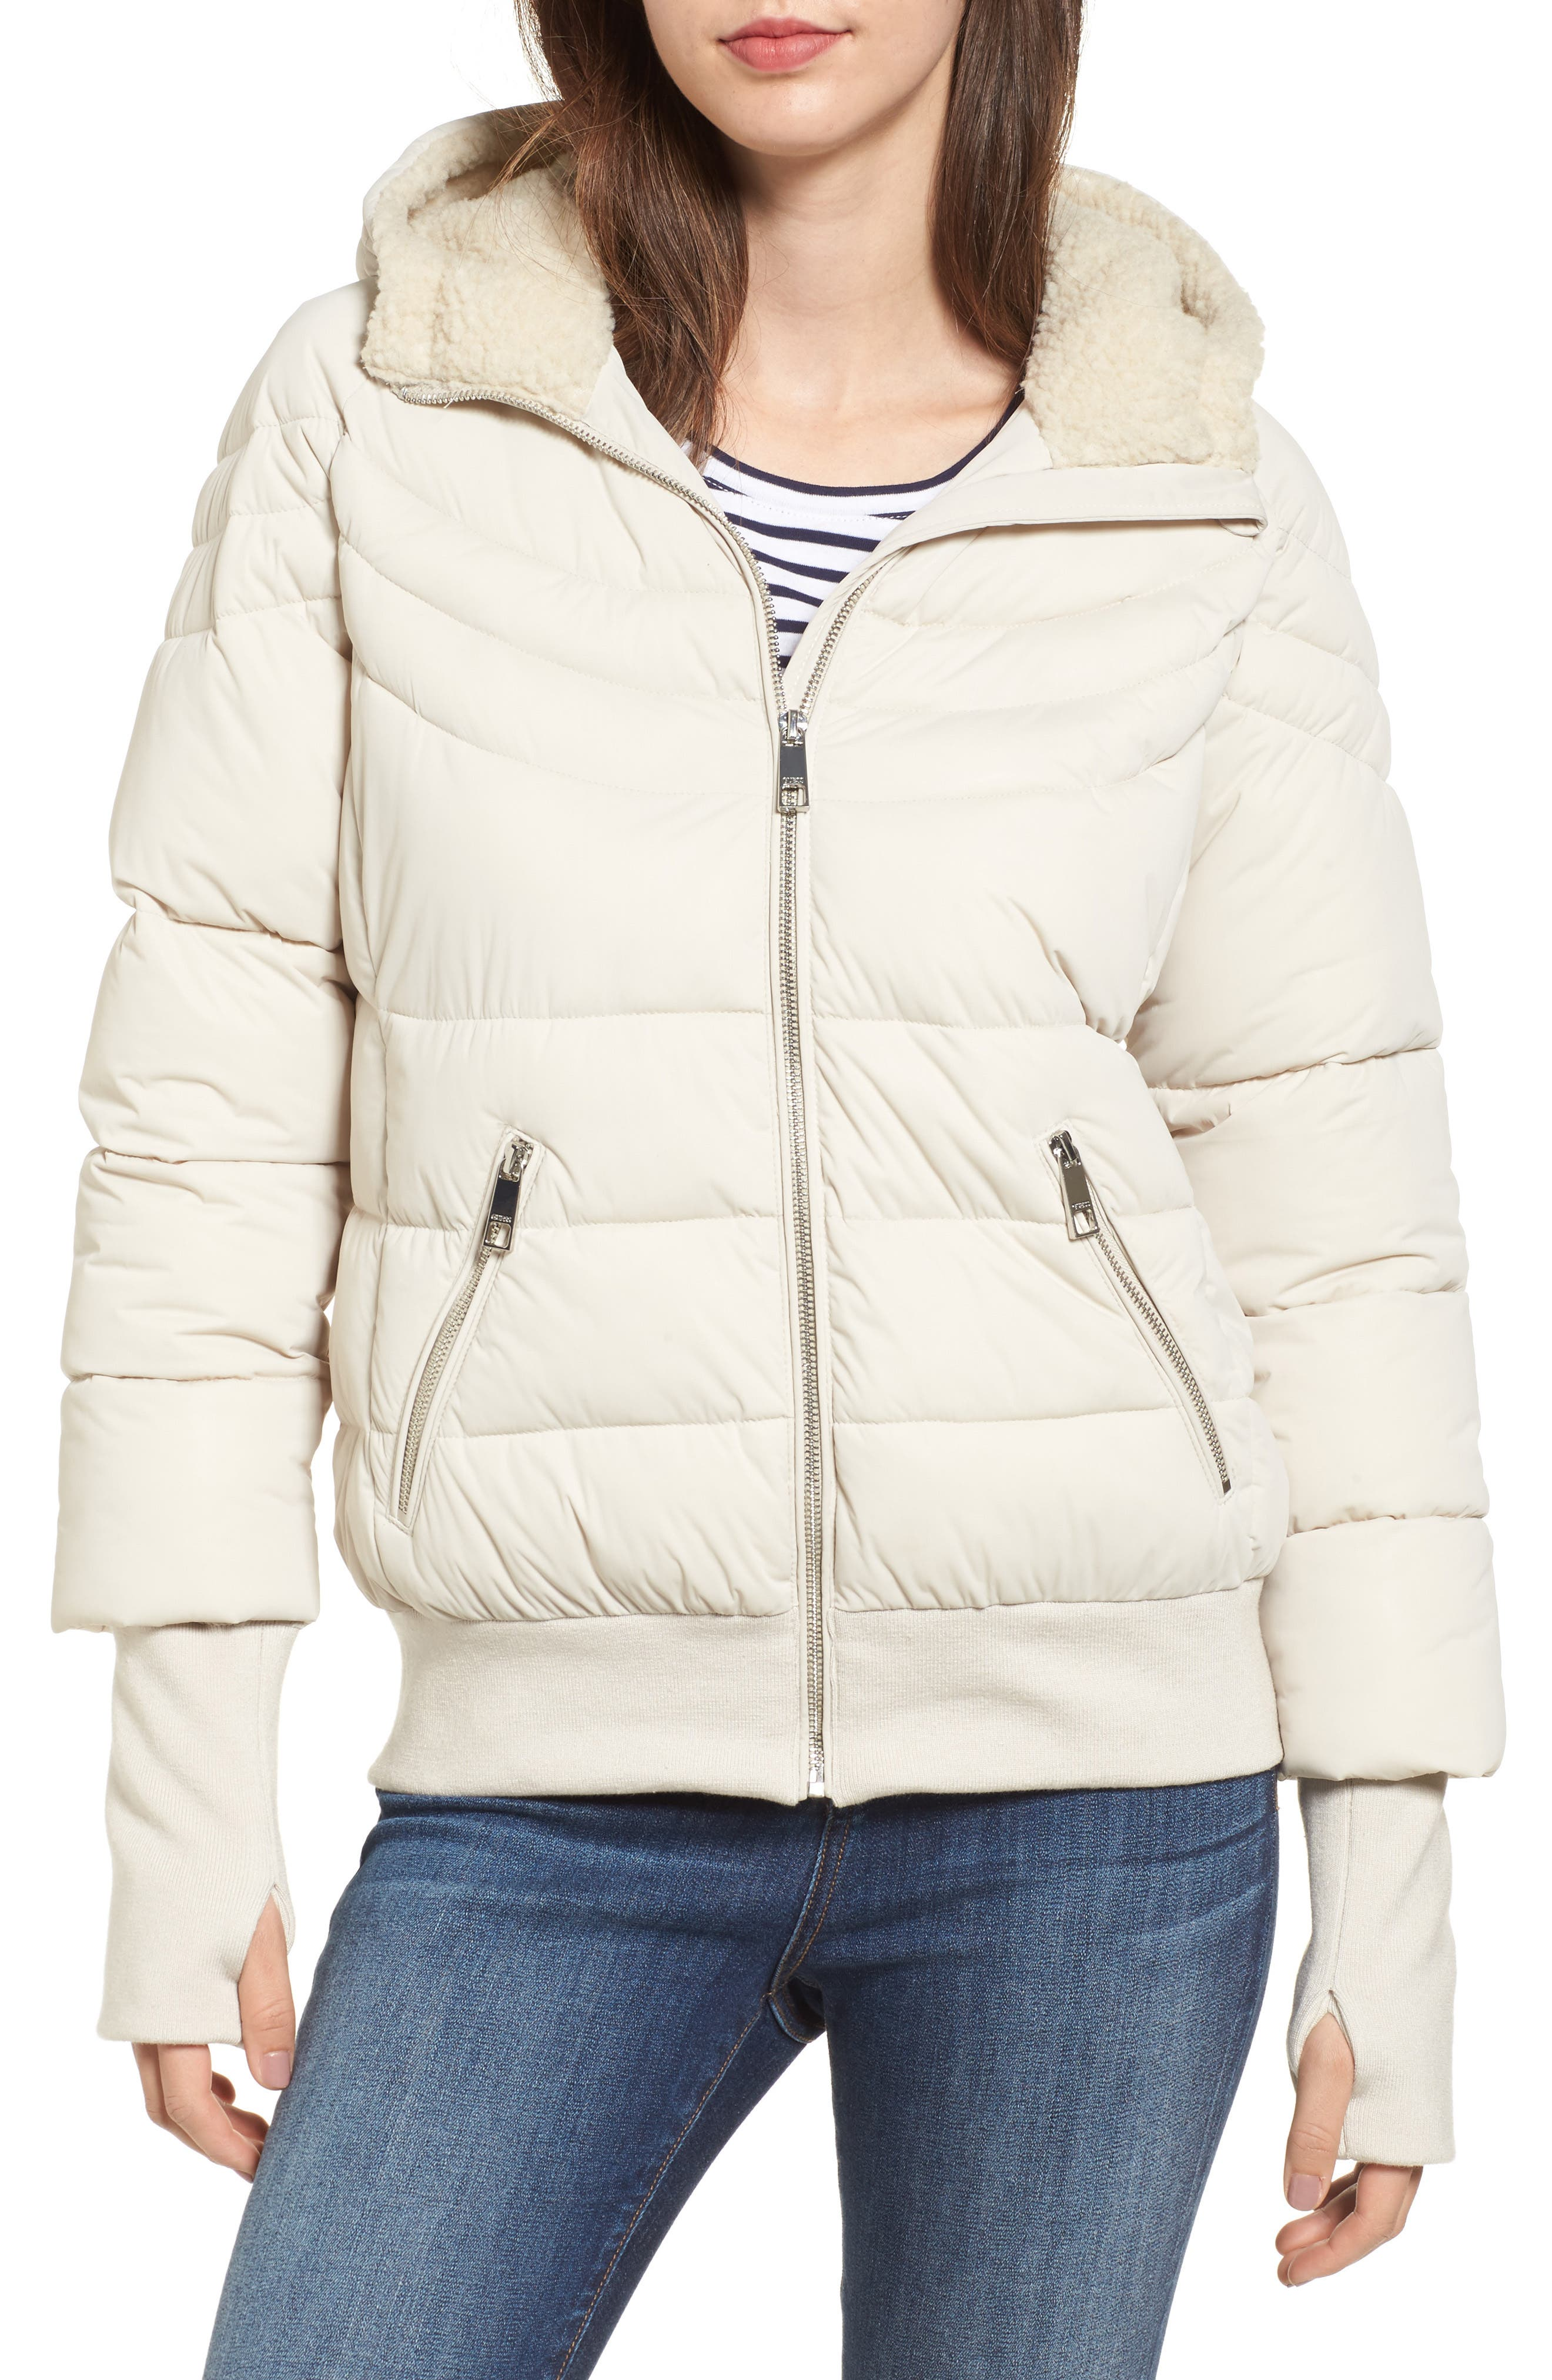 Main Image - GUESS Oversize Hooded Puffer Jacket with Knit & Faux Shearling Trim